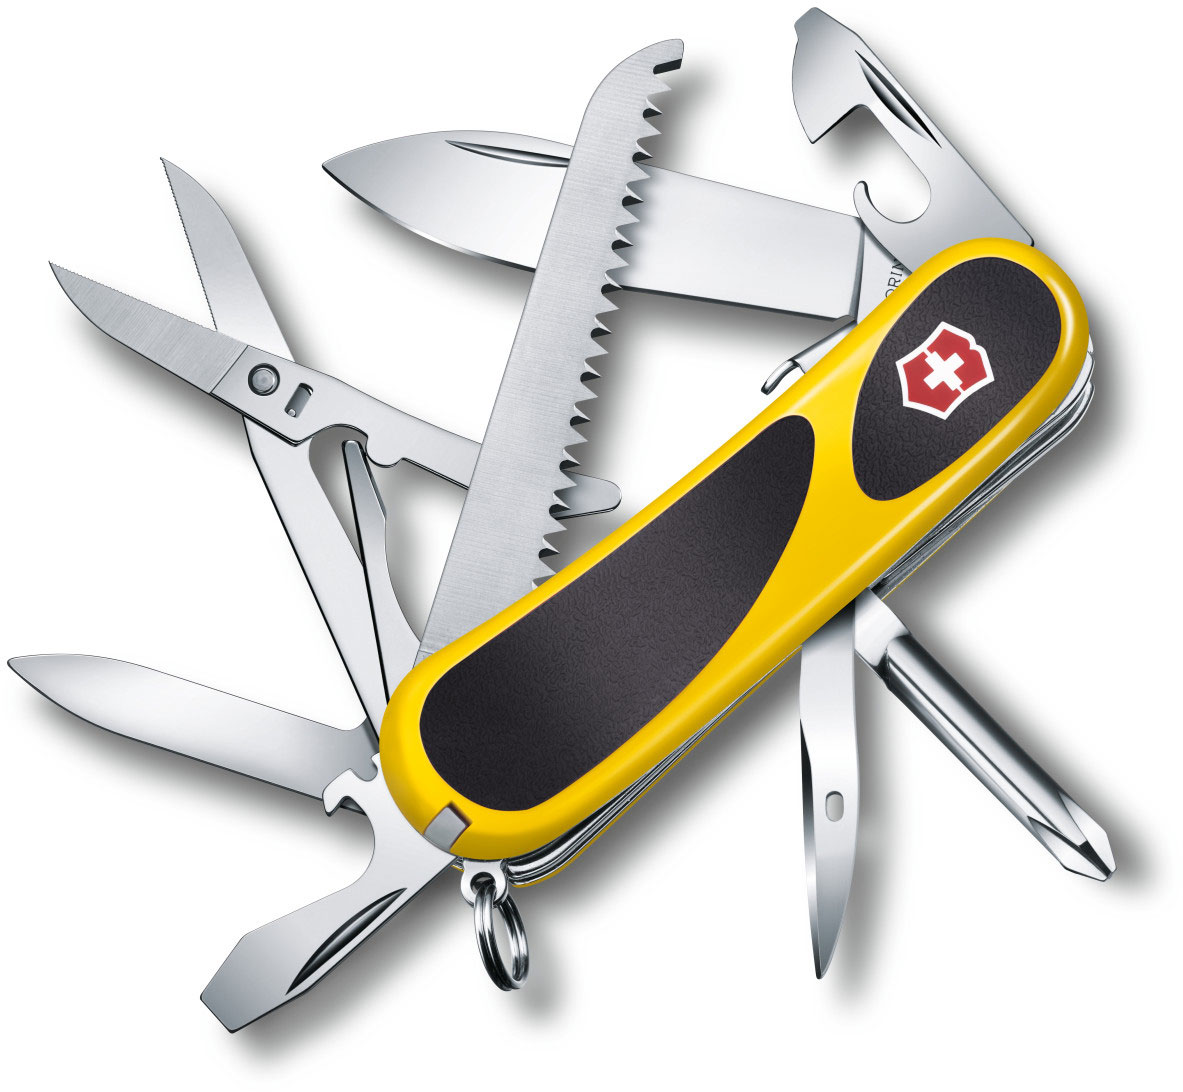 Victorinox Swiss Army Locking EvoGrip S18 Multi-Tool 3-3/8 inch Yellow Handles with Black Rubber Inserts